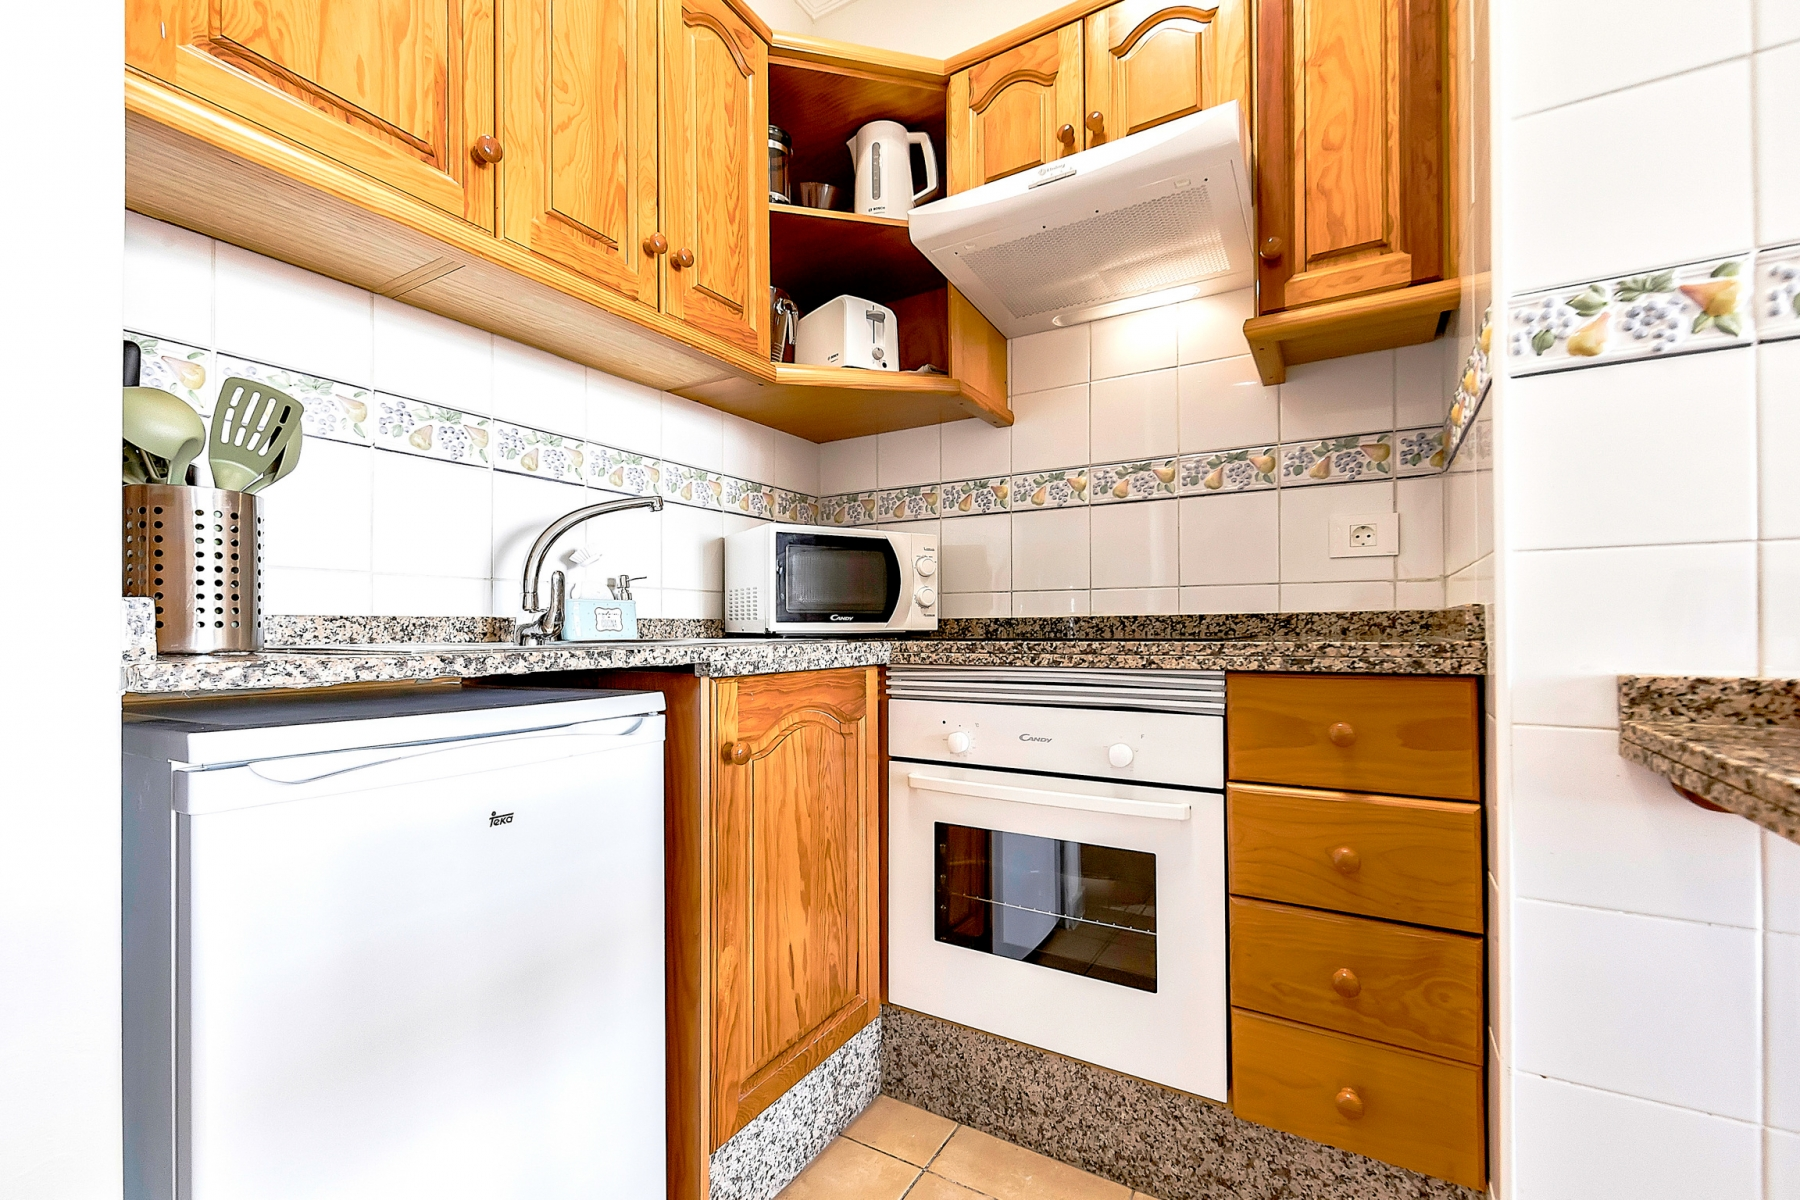 Properties for Sale in Tenerife, Canary Islands, Spain | SylkWayStar Real Estate. 1 bedroom apartment Yucca Park. Image-22585